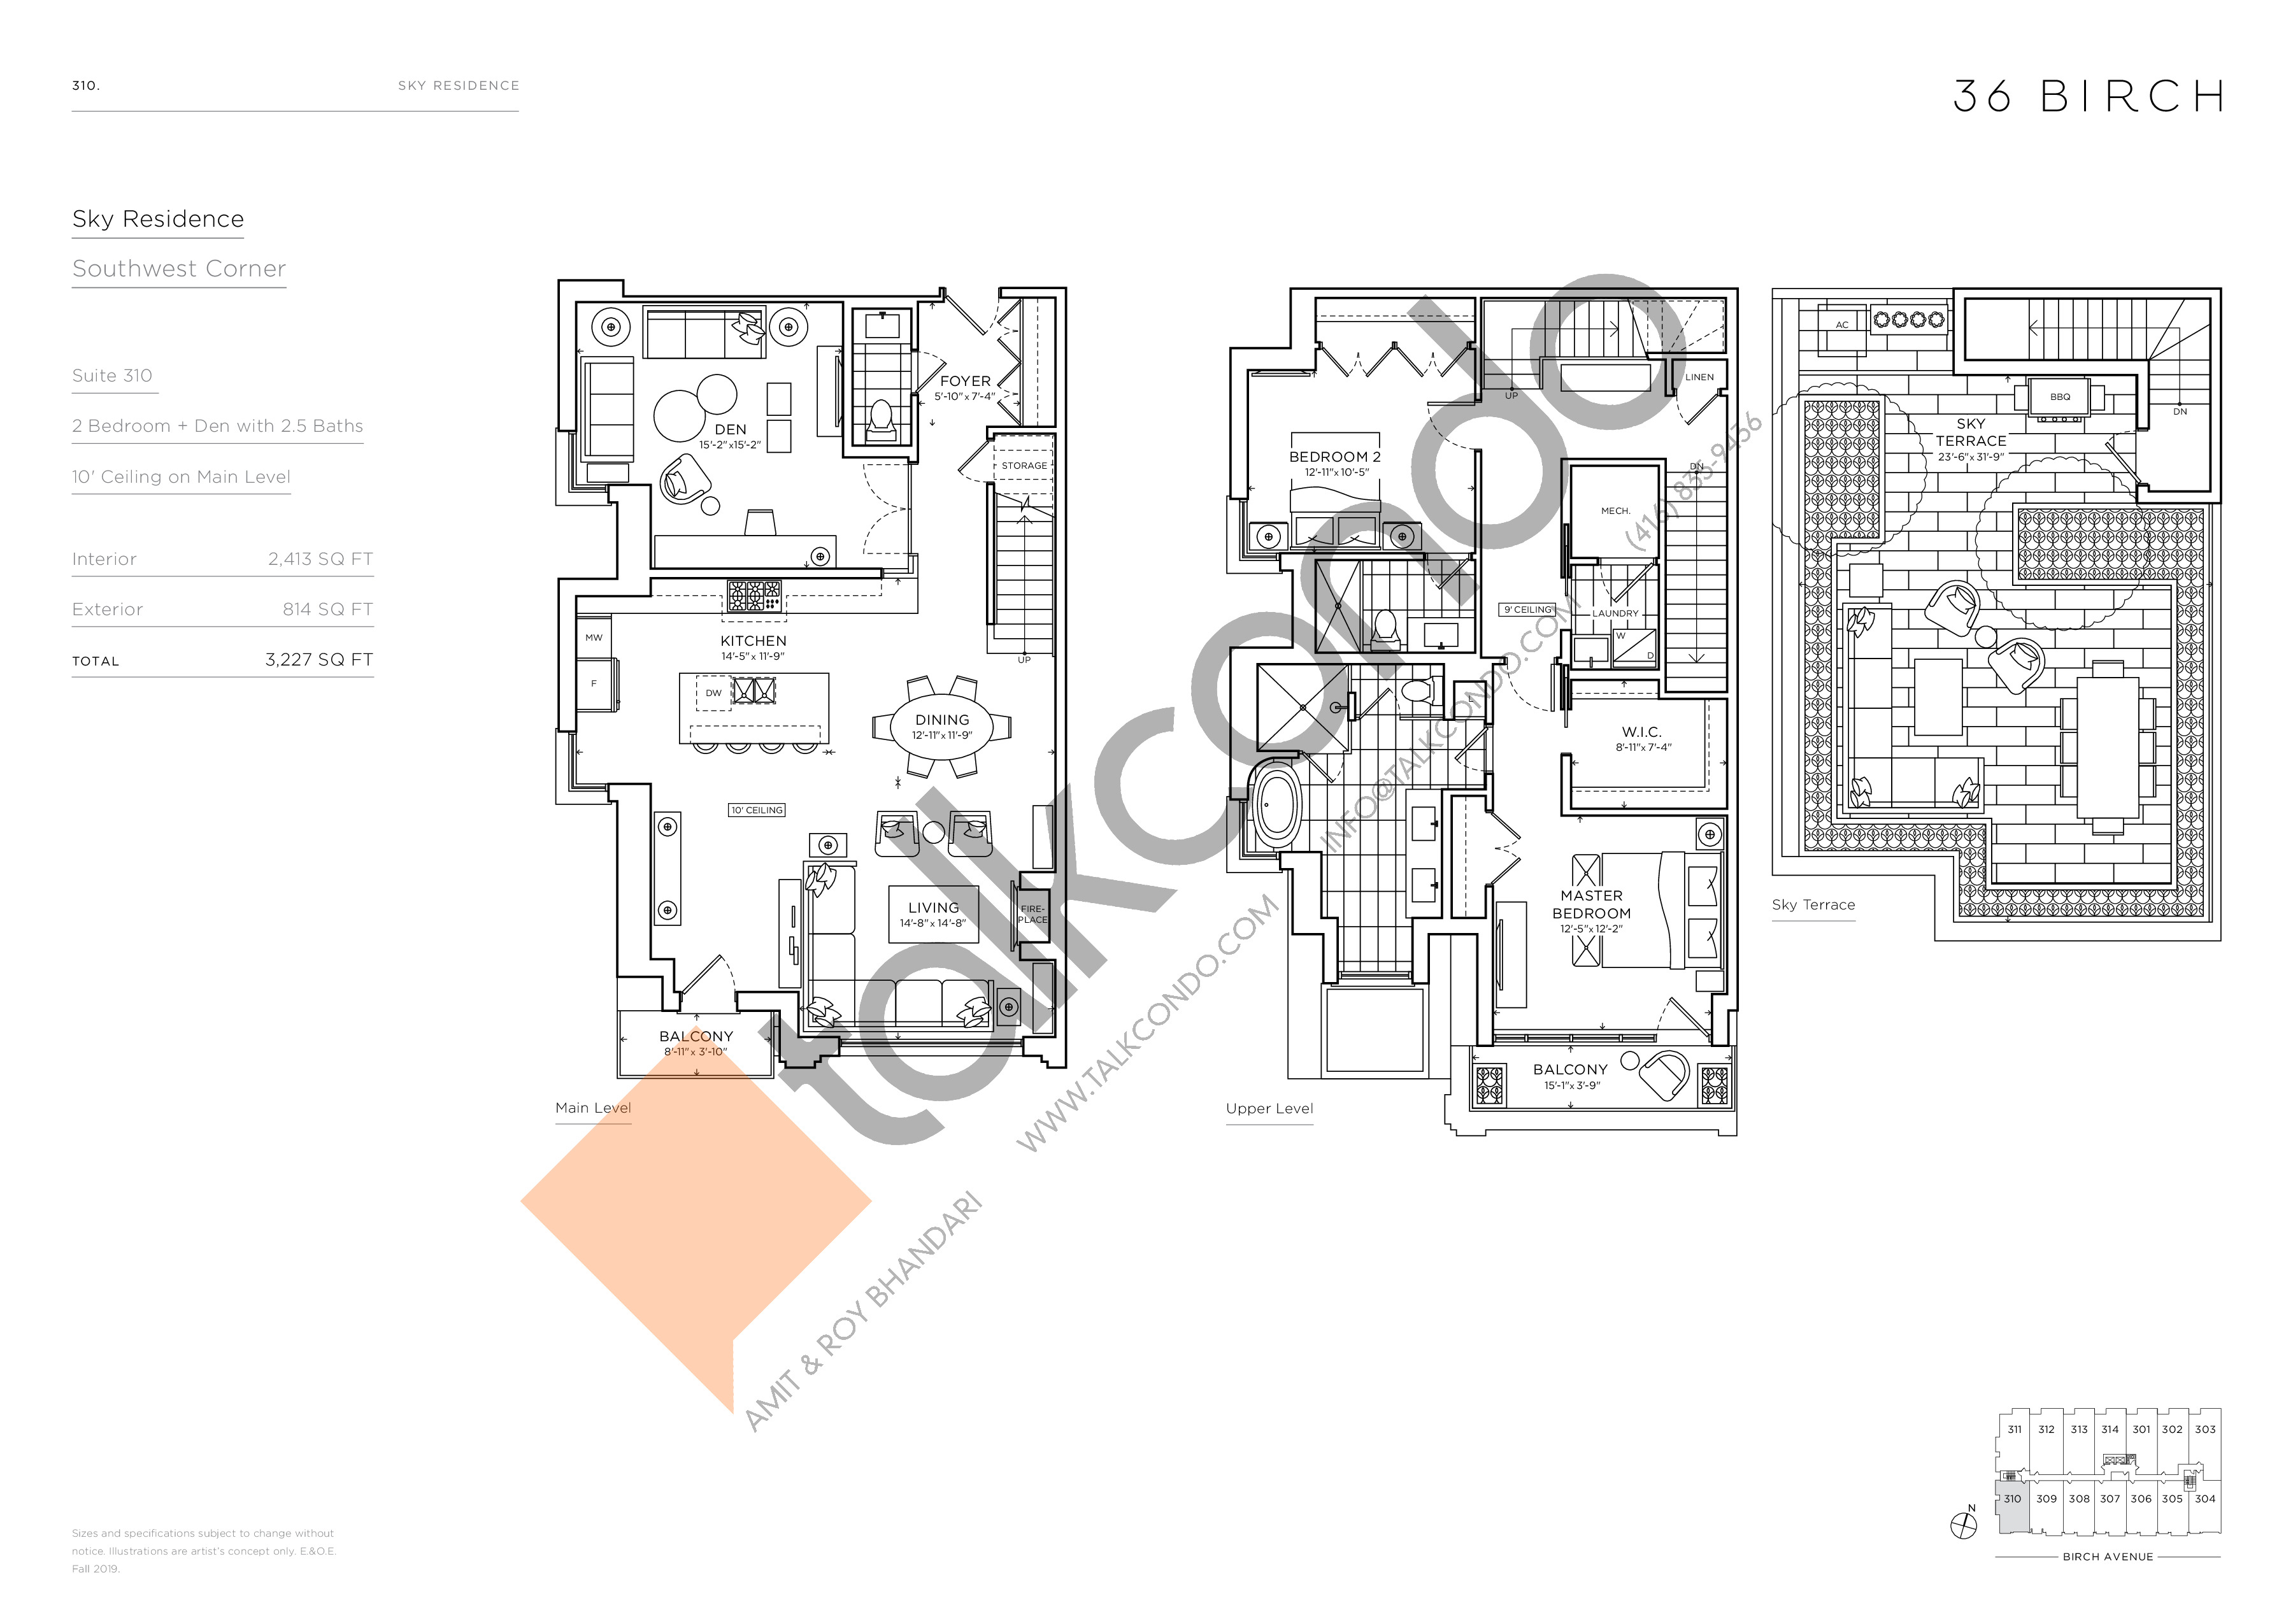 310 - Sky Residence Floor Plan at 36 Birch Avenue Condos - 2413 sq.ft